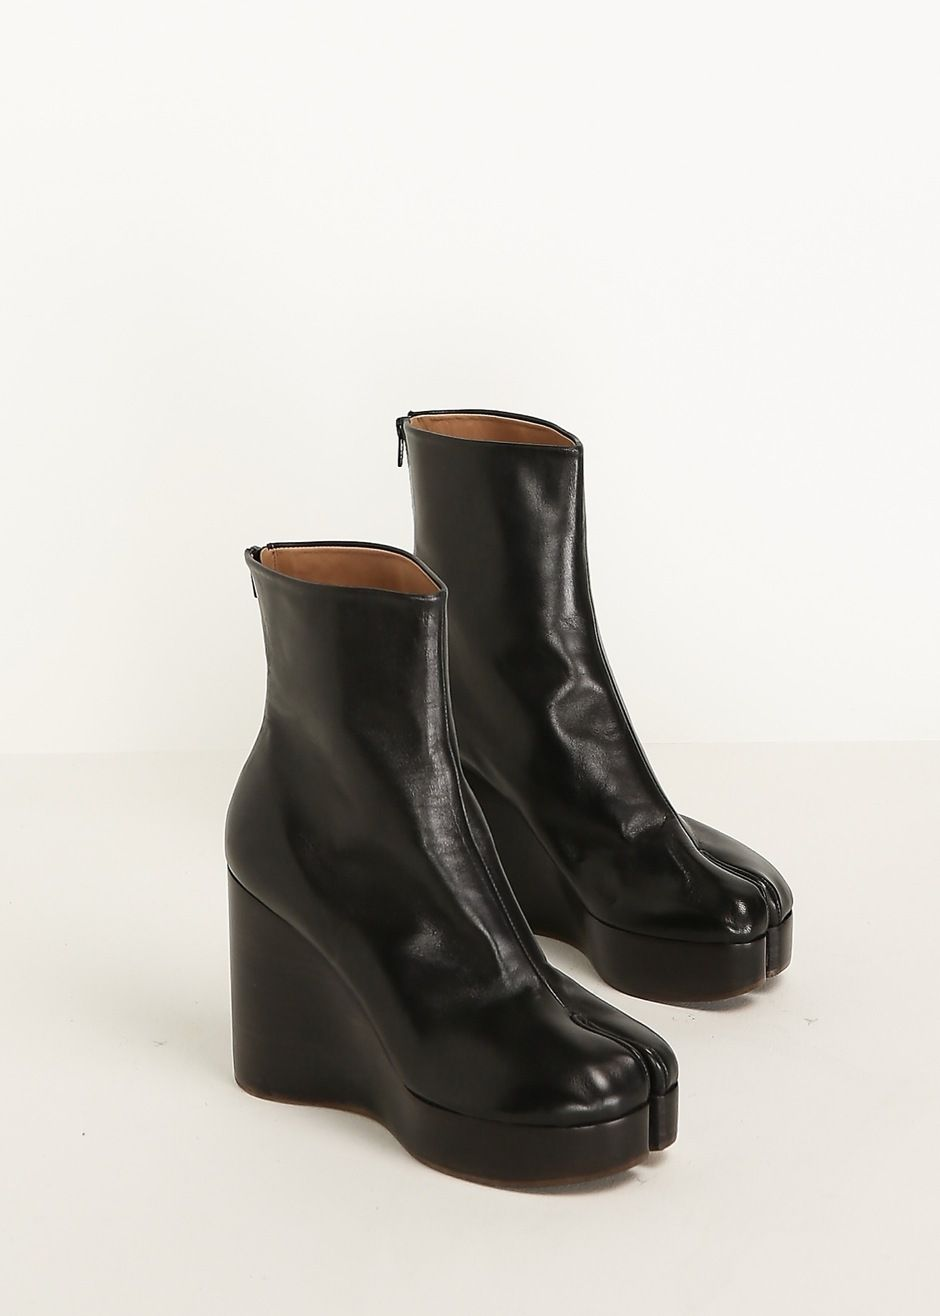 1e02cd3ee4d Maison Margiela. Split toe leather platform ankle boot in black inspired by  a traditional Japanese design. Made in Italy.